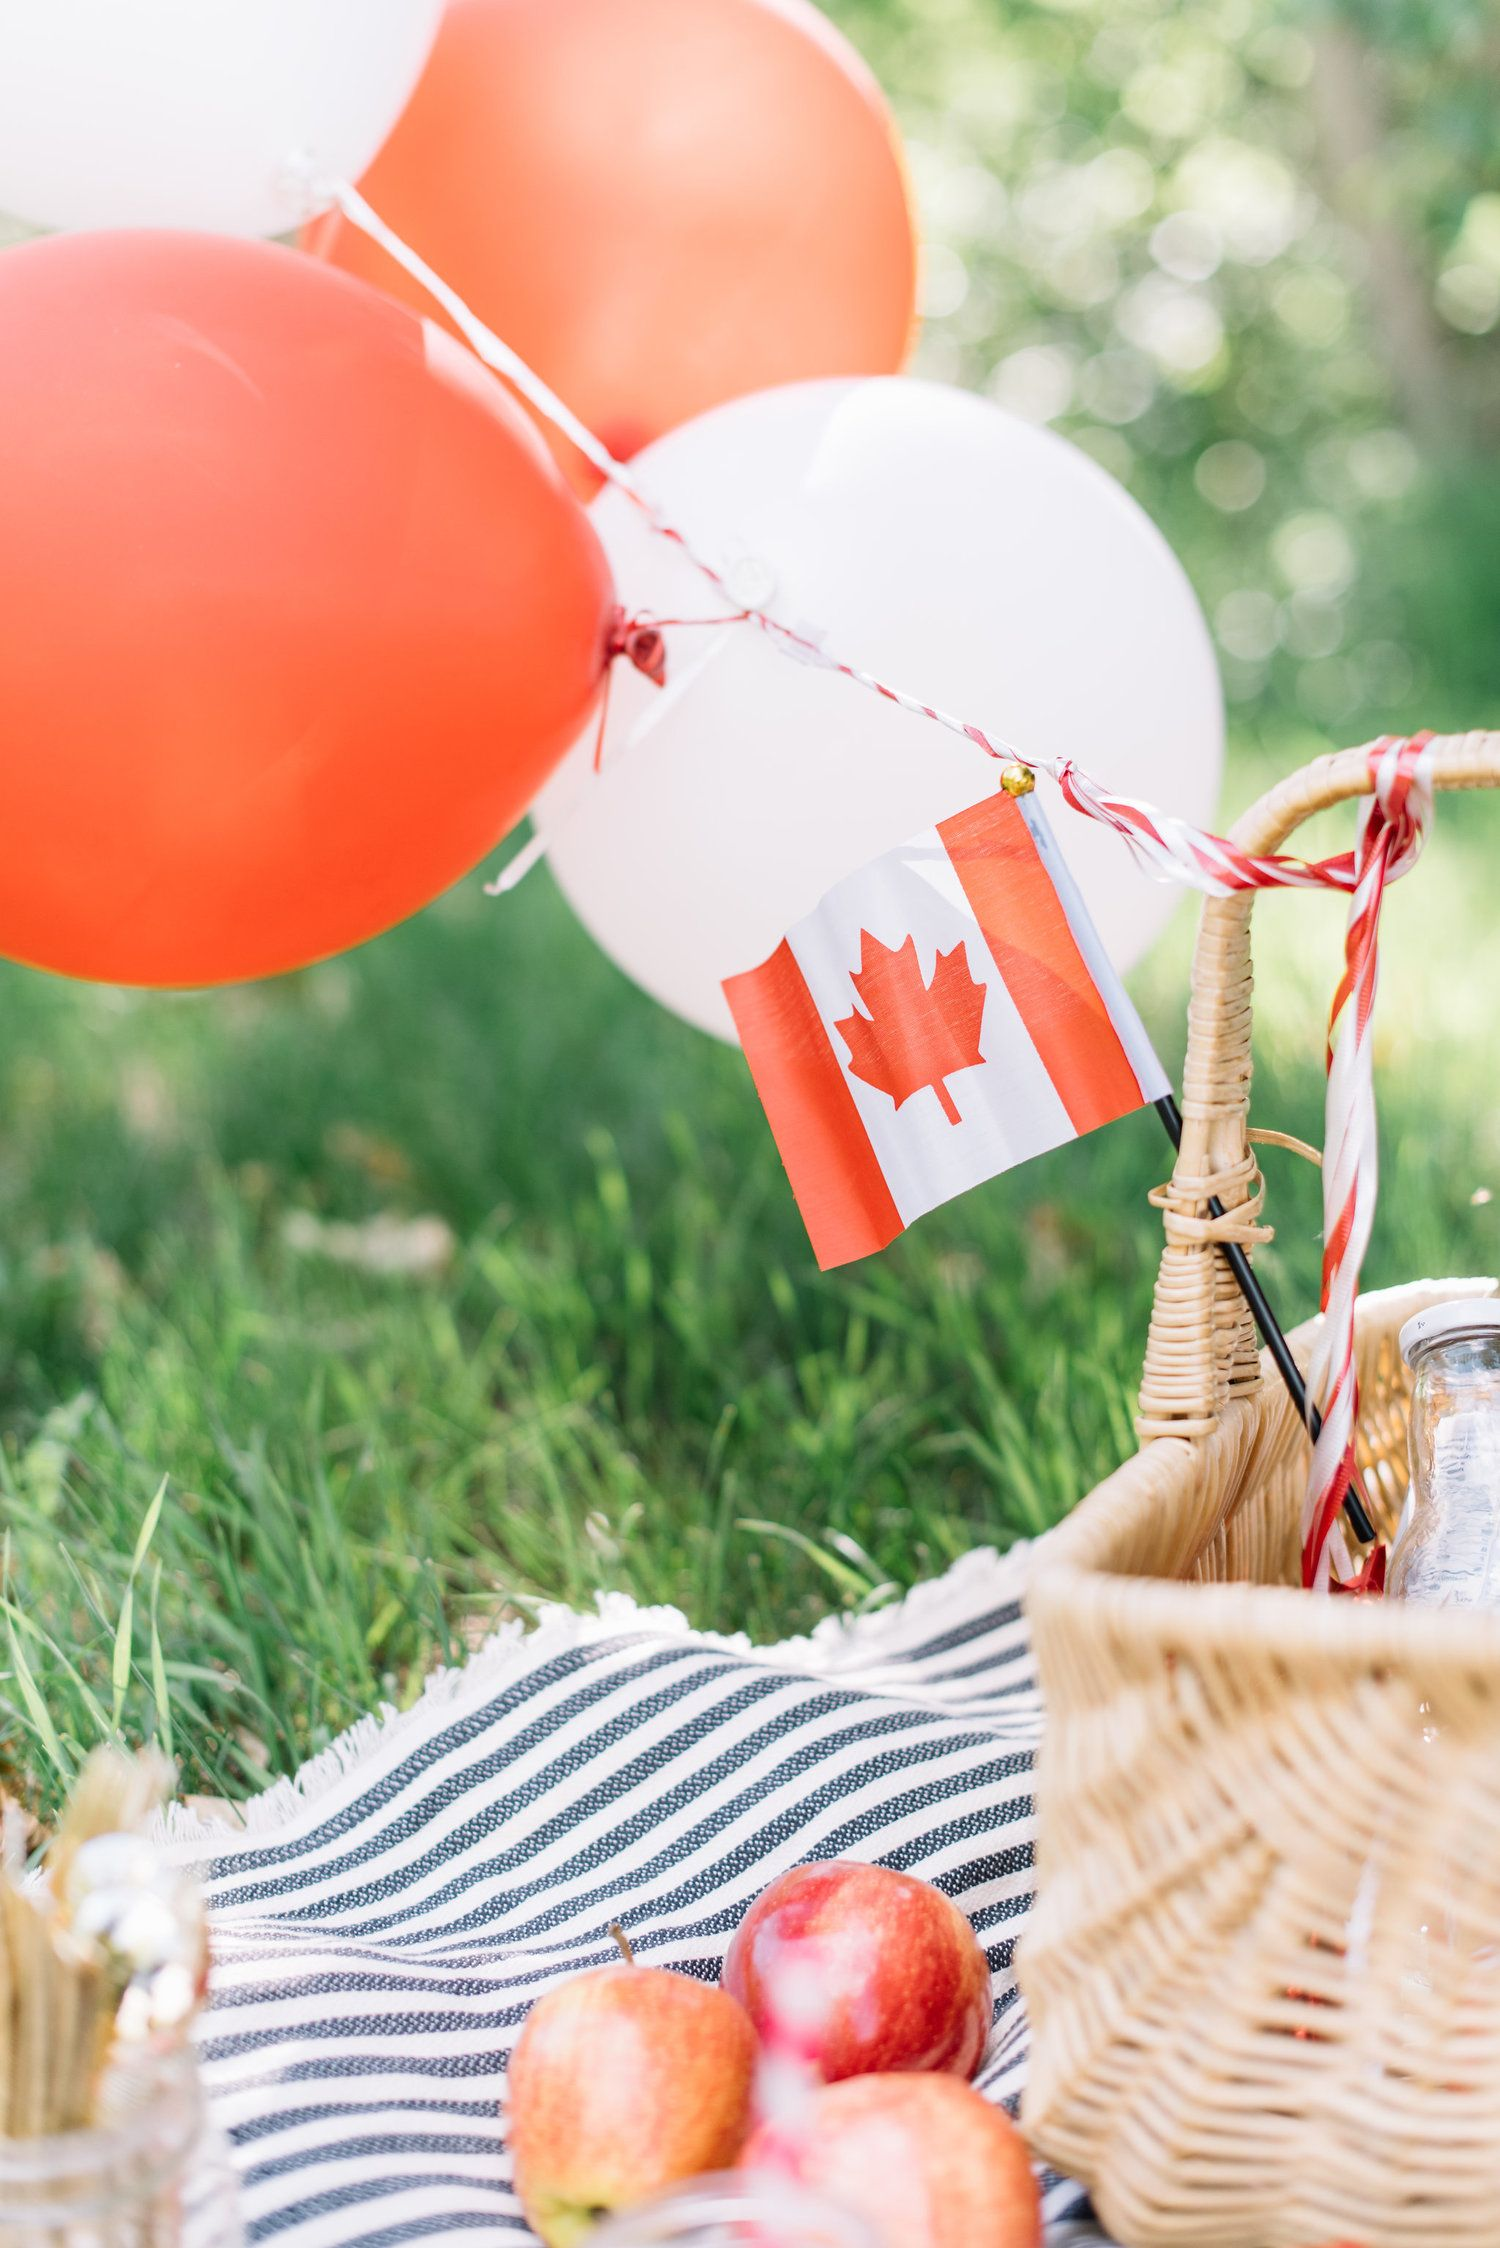 A Very Canadian Picnic (With images) Happy canada day